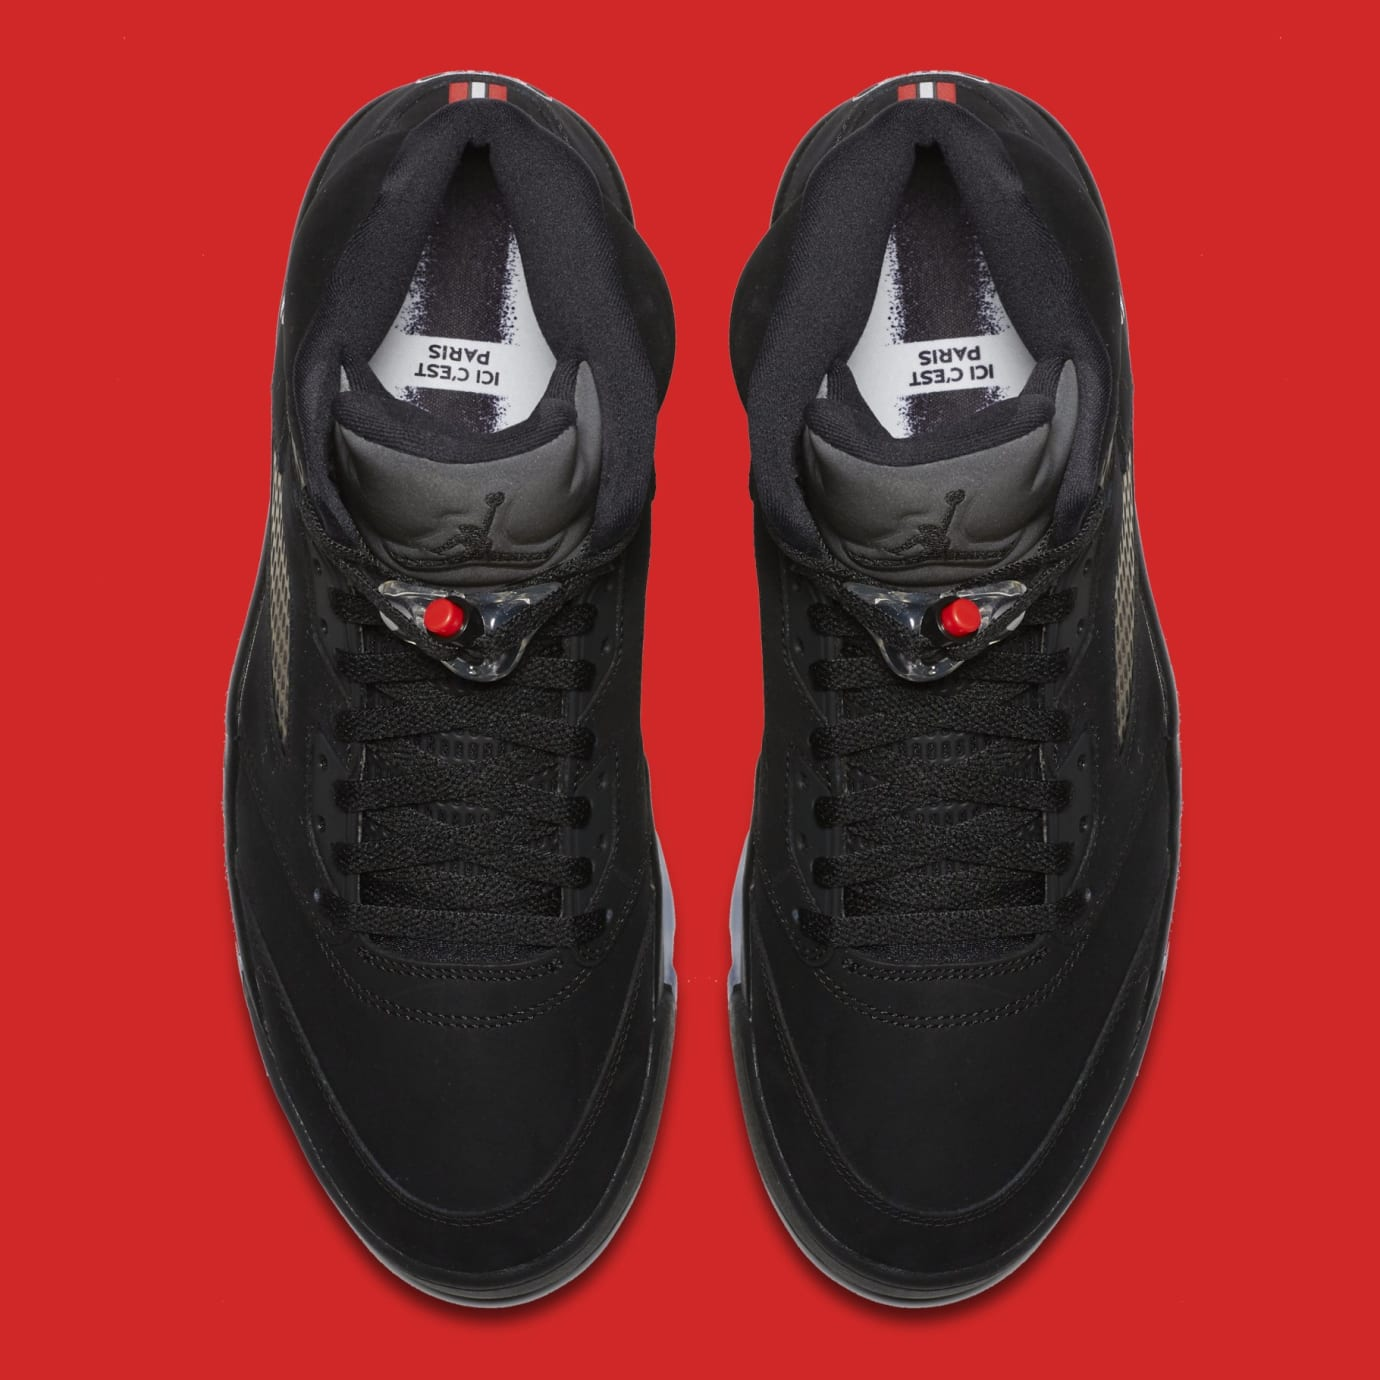 8d2d5e1f532426 Air Jordan 5 Retro  Paris Saint-Germain  Images